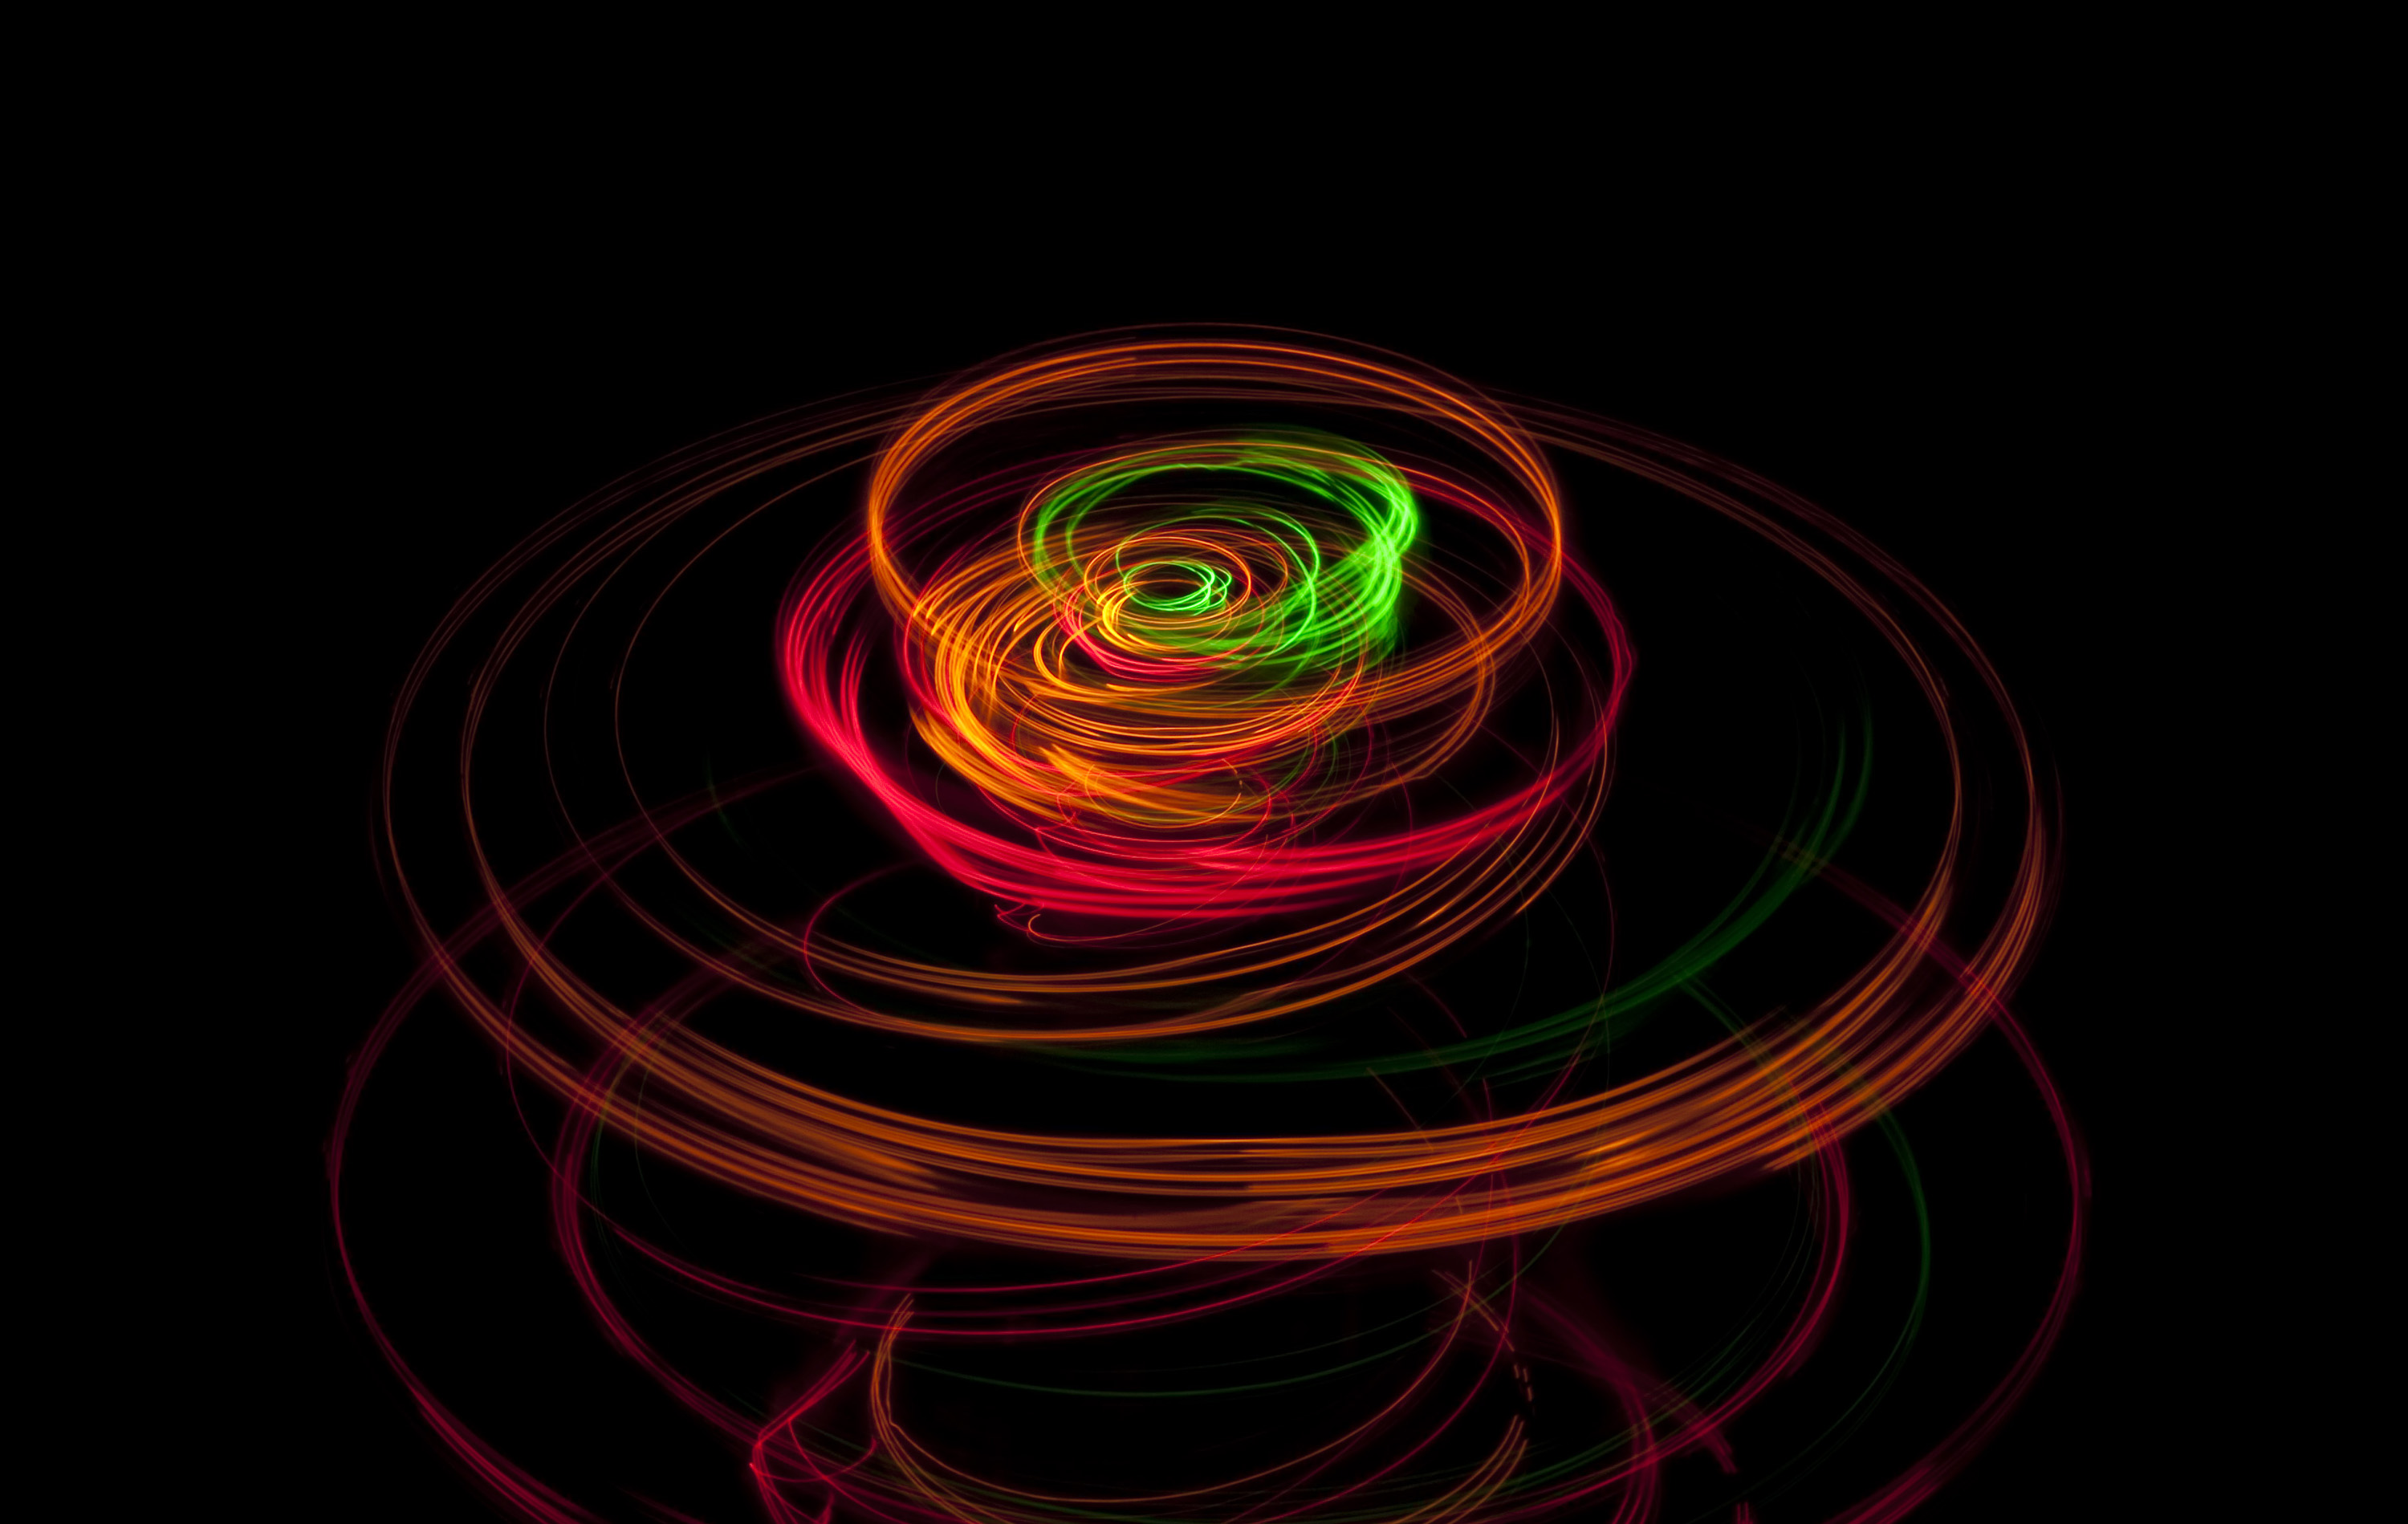 spinning light motion free backgrounds and textures cr103 com